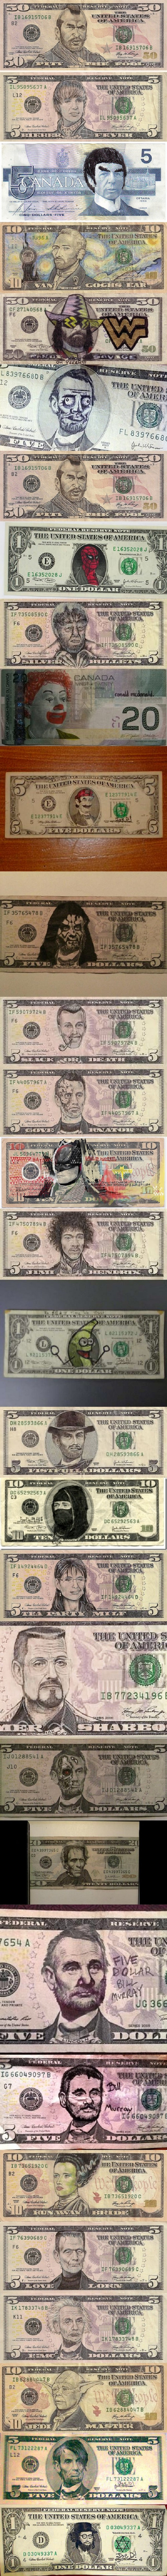 Defaced currency